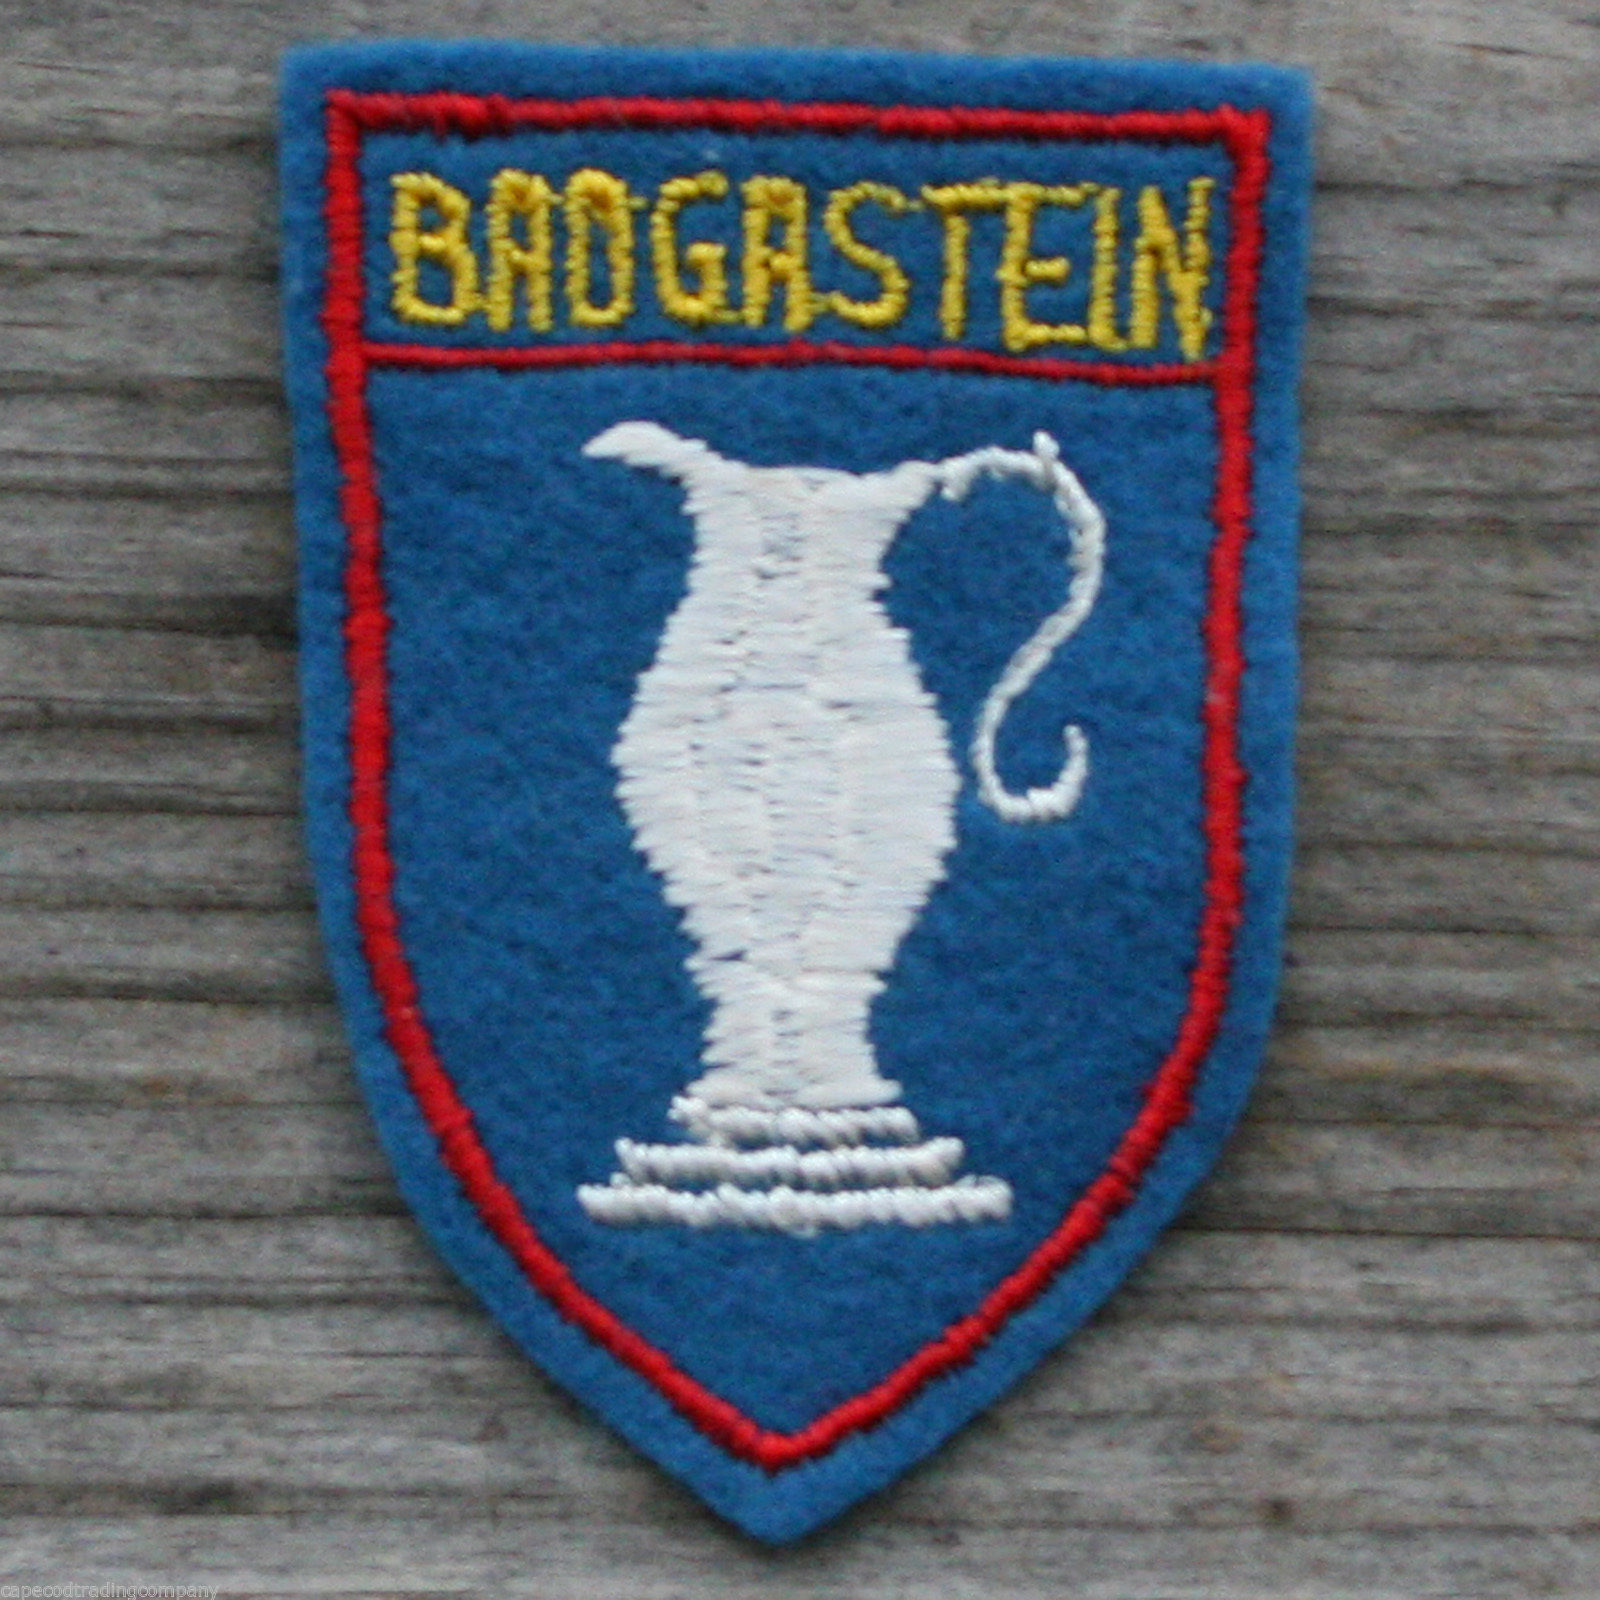 BAD GASTEIN Vintage Travel Ski Patch AUSTRIA Skiing Hiking Felt Salzburg